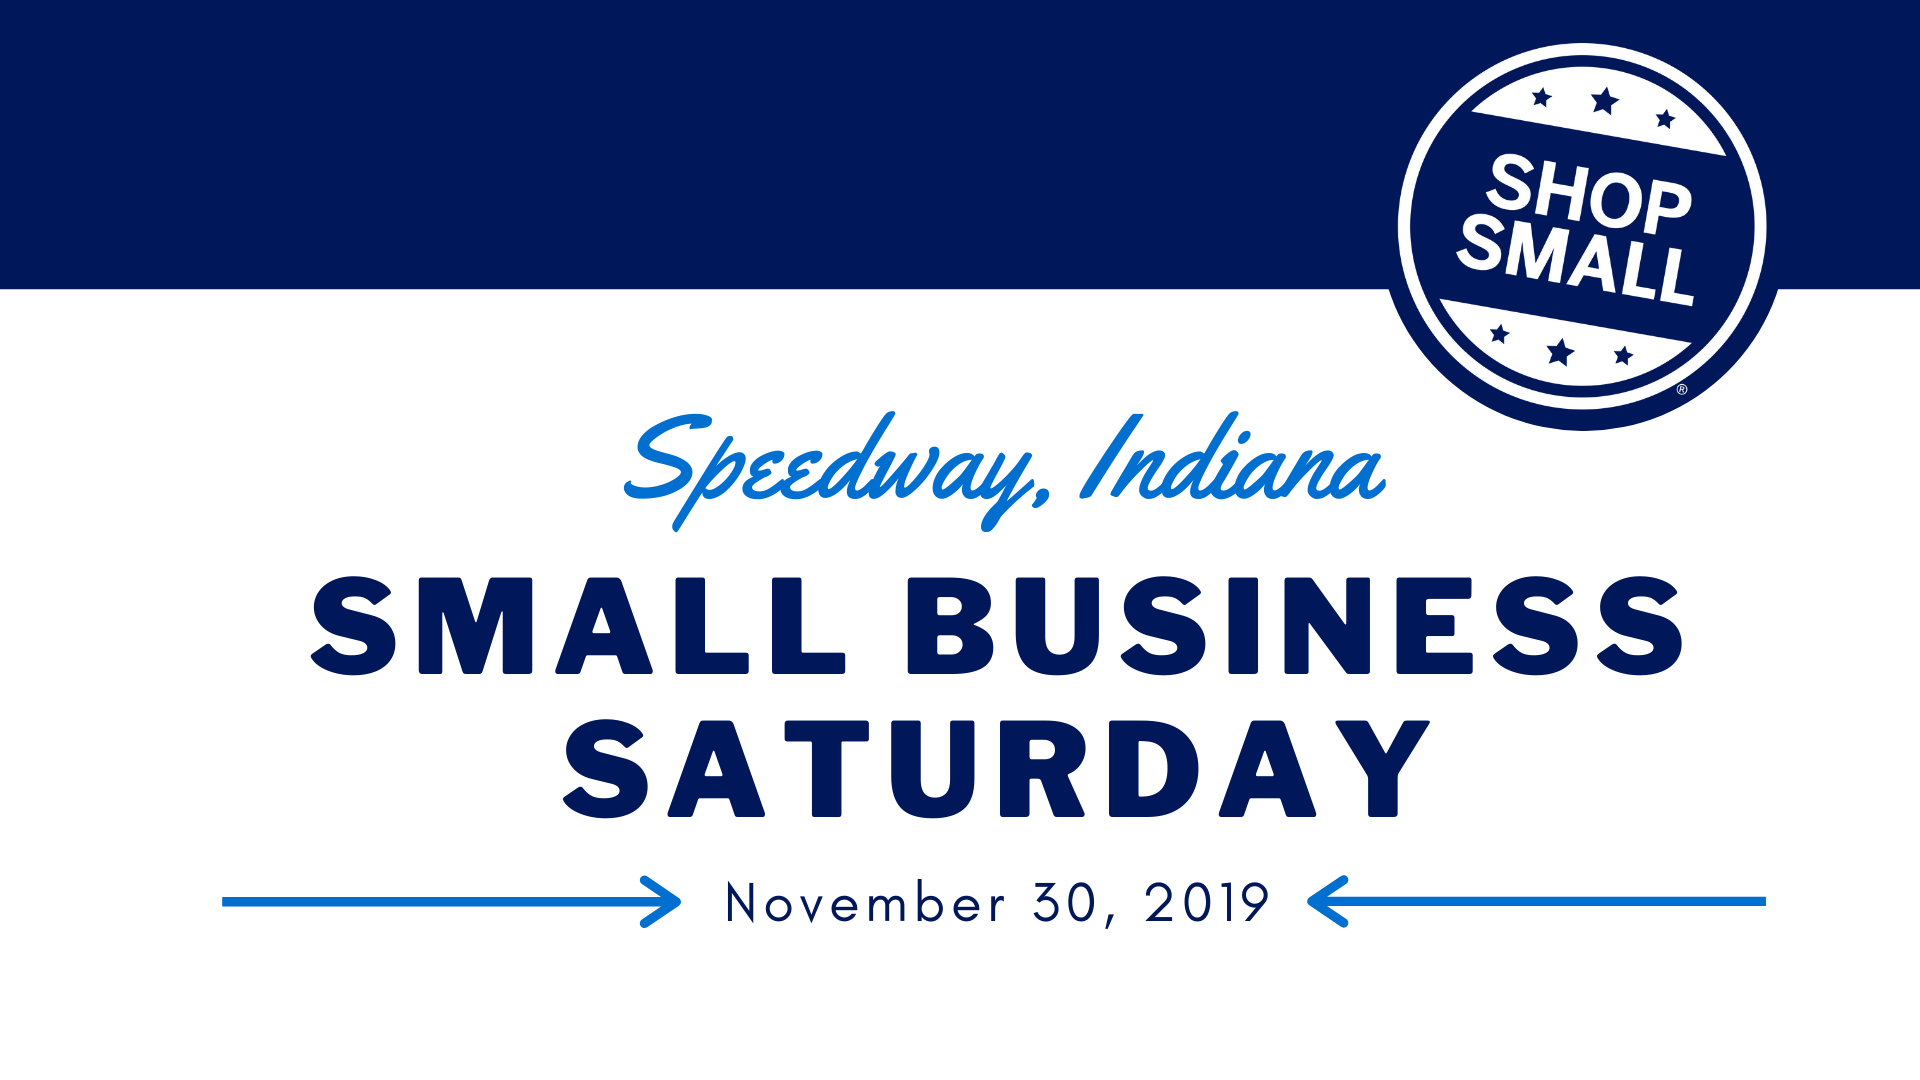 Speedway Small Business Saturday 2019